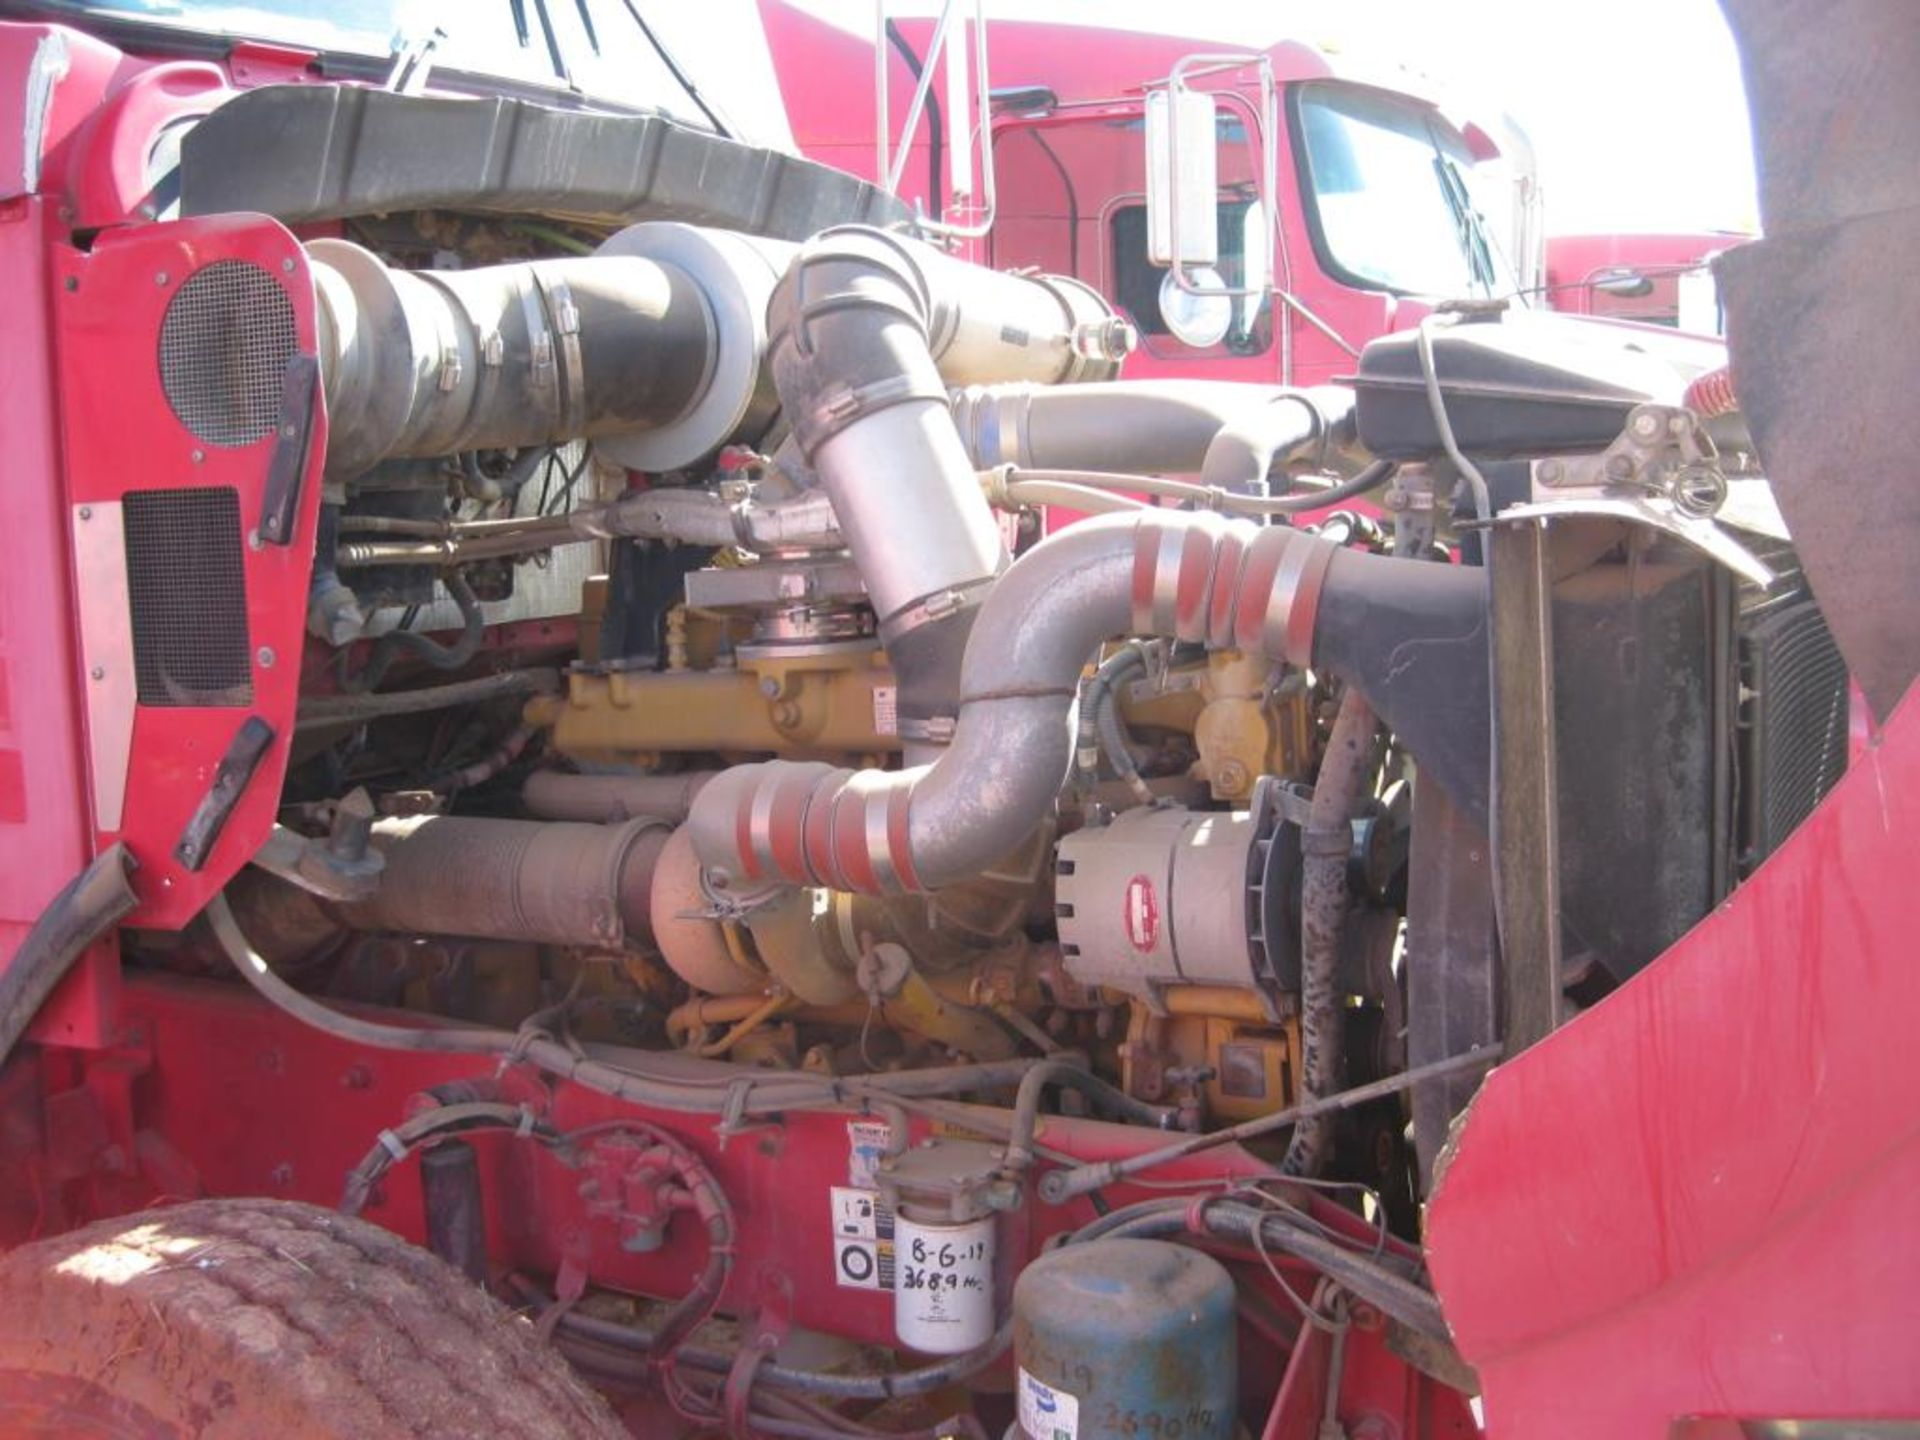 Truck - Image 21 of 24